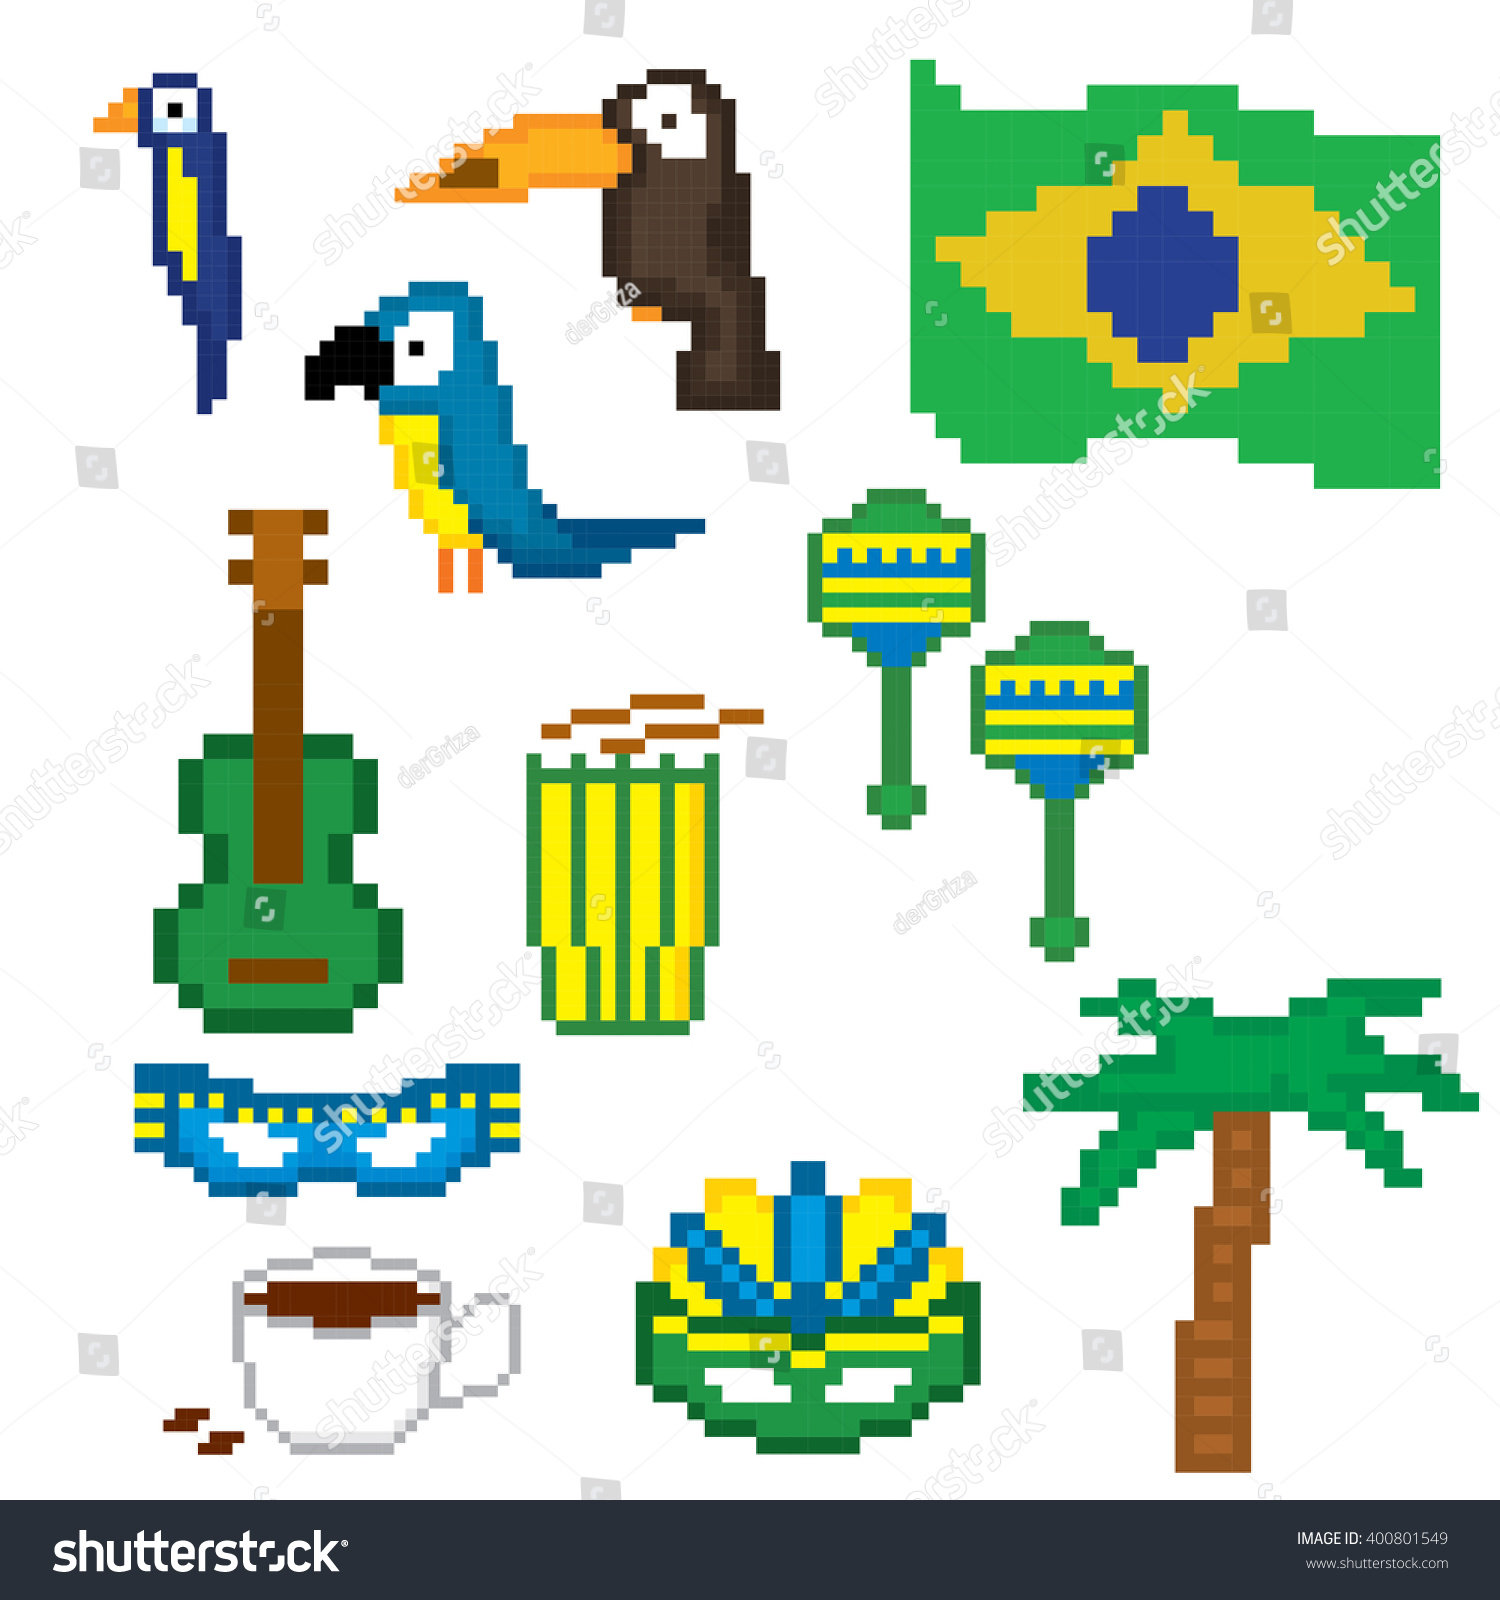 Brazil culture symbol set pixel art stock vector 400801549 brazil culture symbol set pixel art old school computer graphic style biocorpaavc